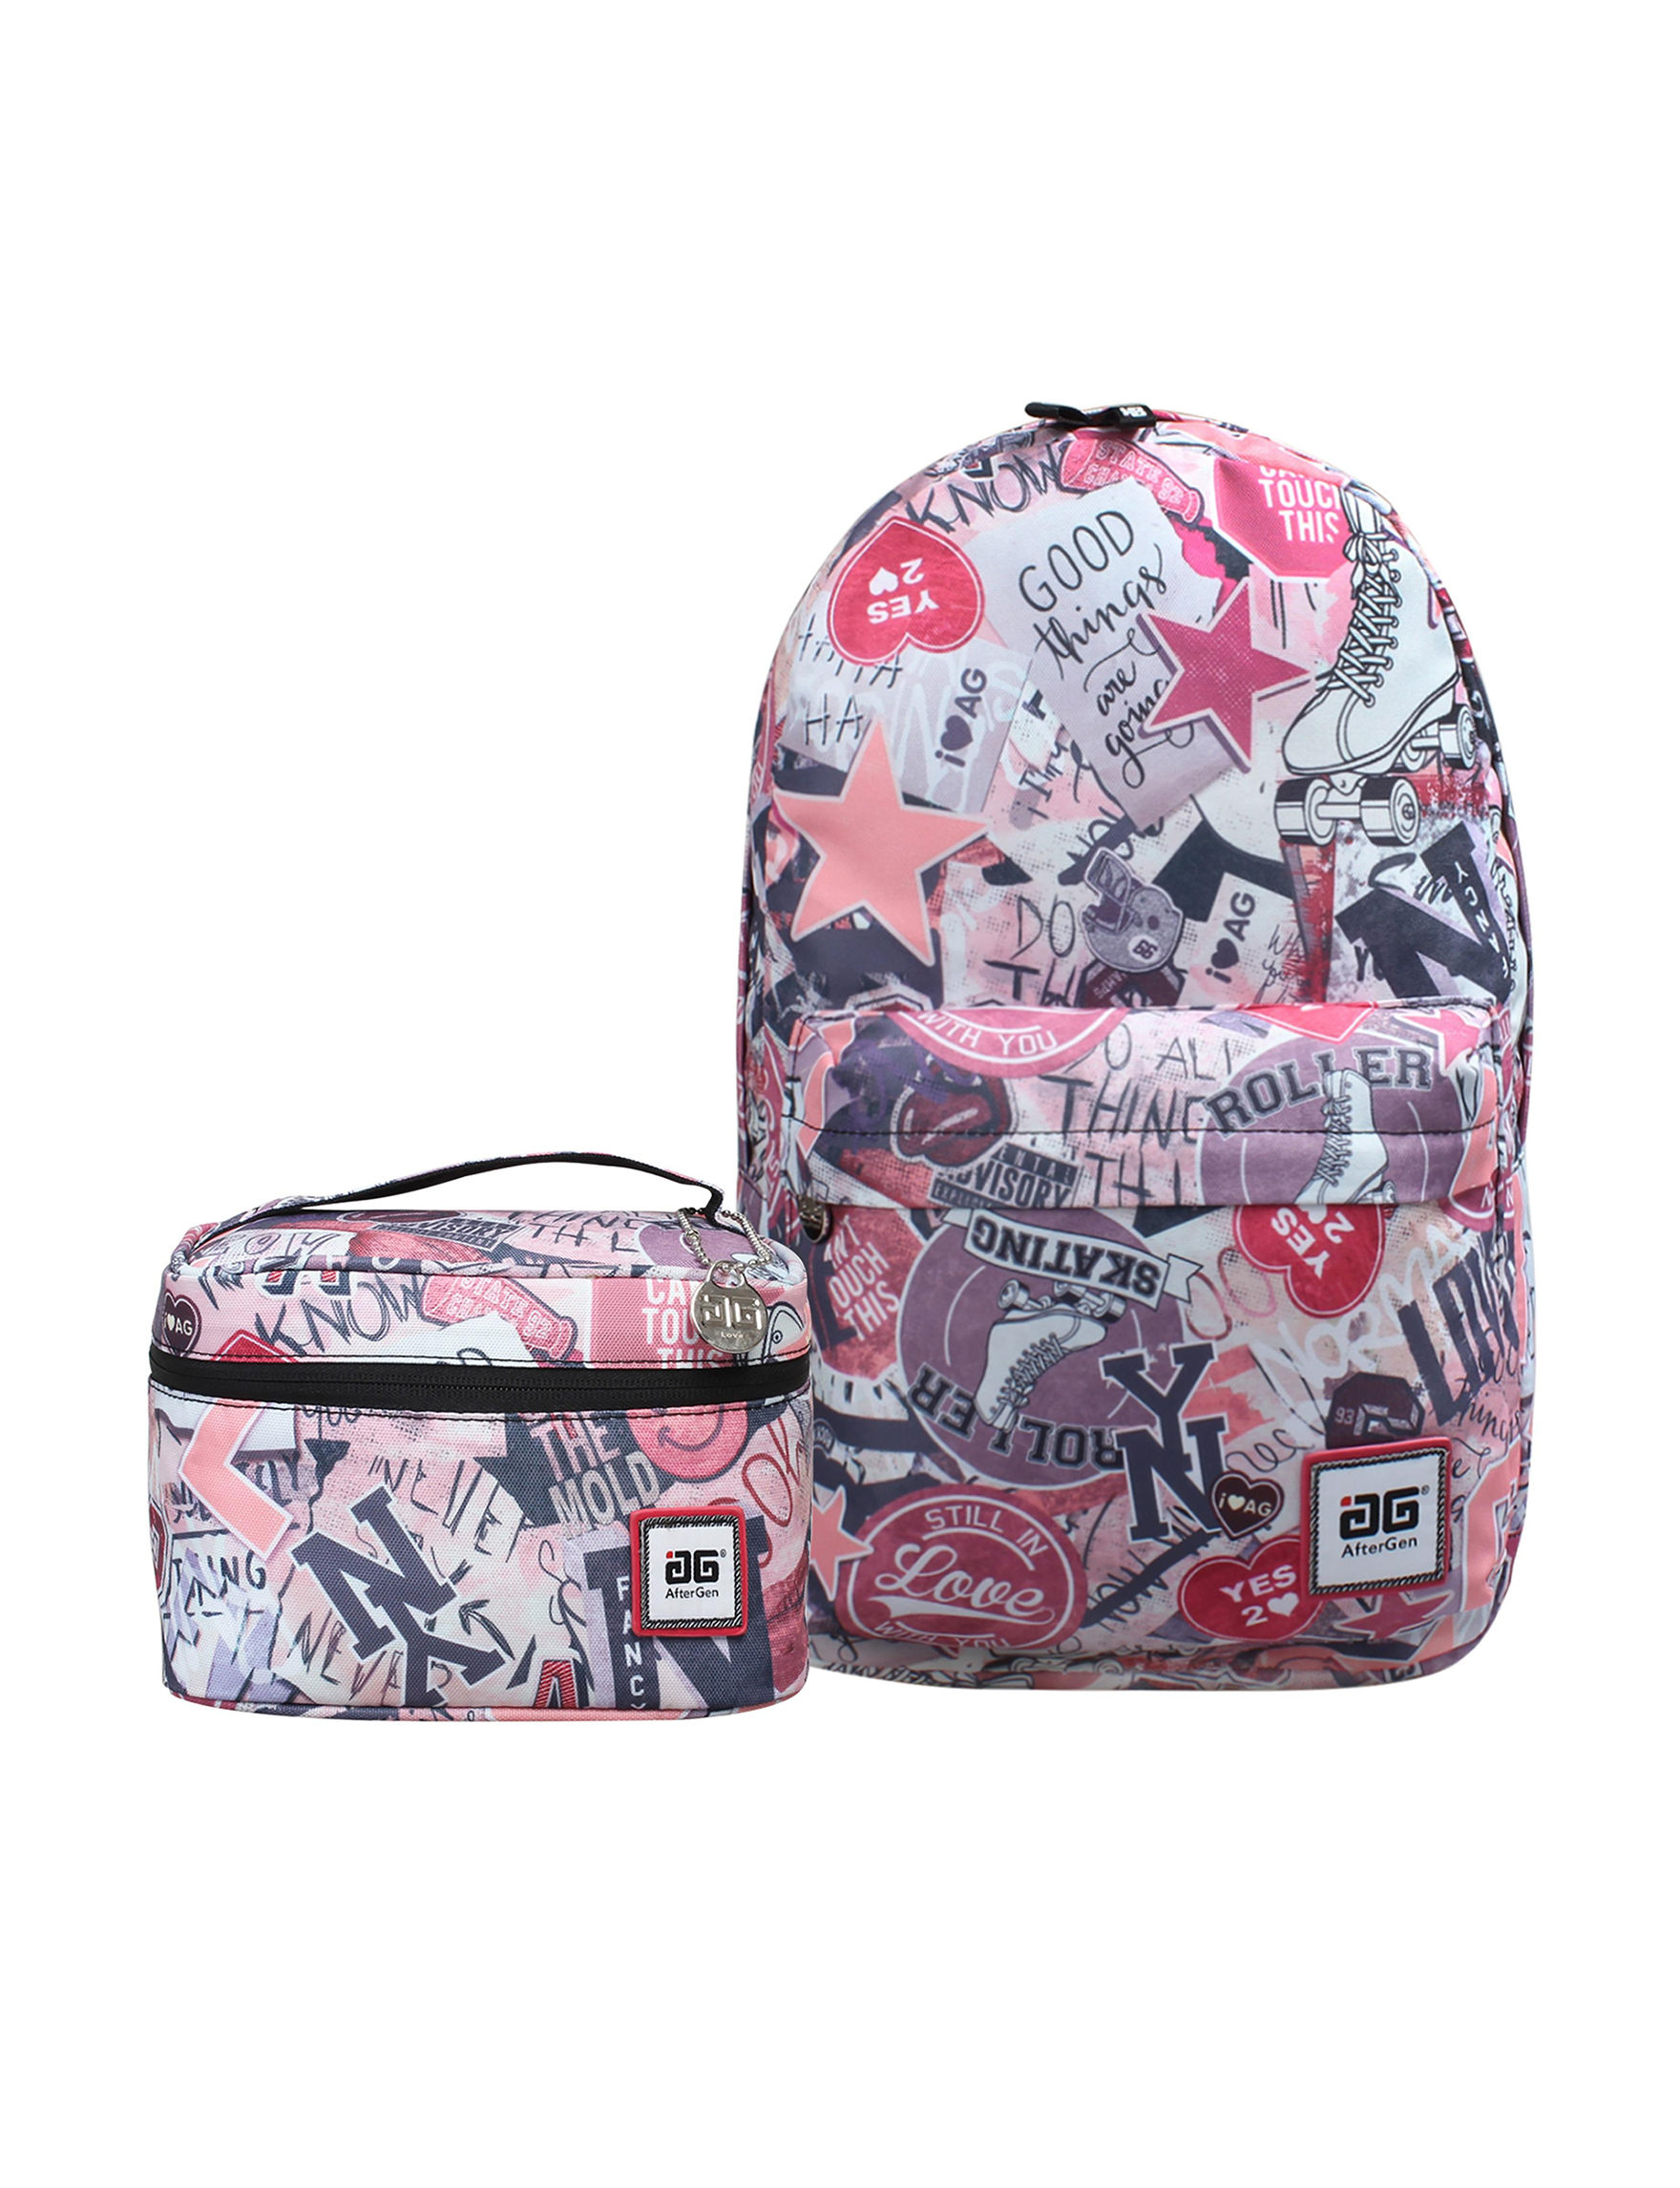 Aftergen Pink / White Lunch Boxes & Bags Bookbags & Backpacks Travel Accessories